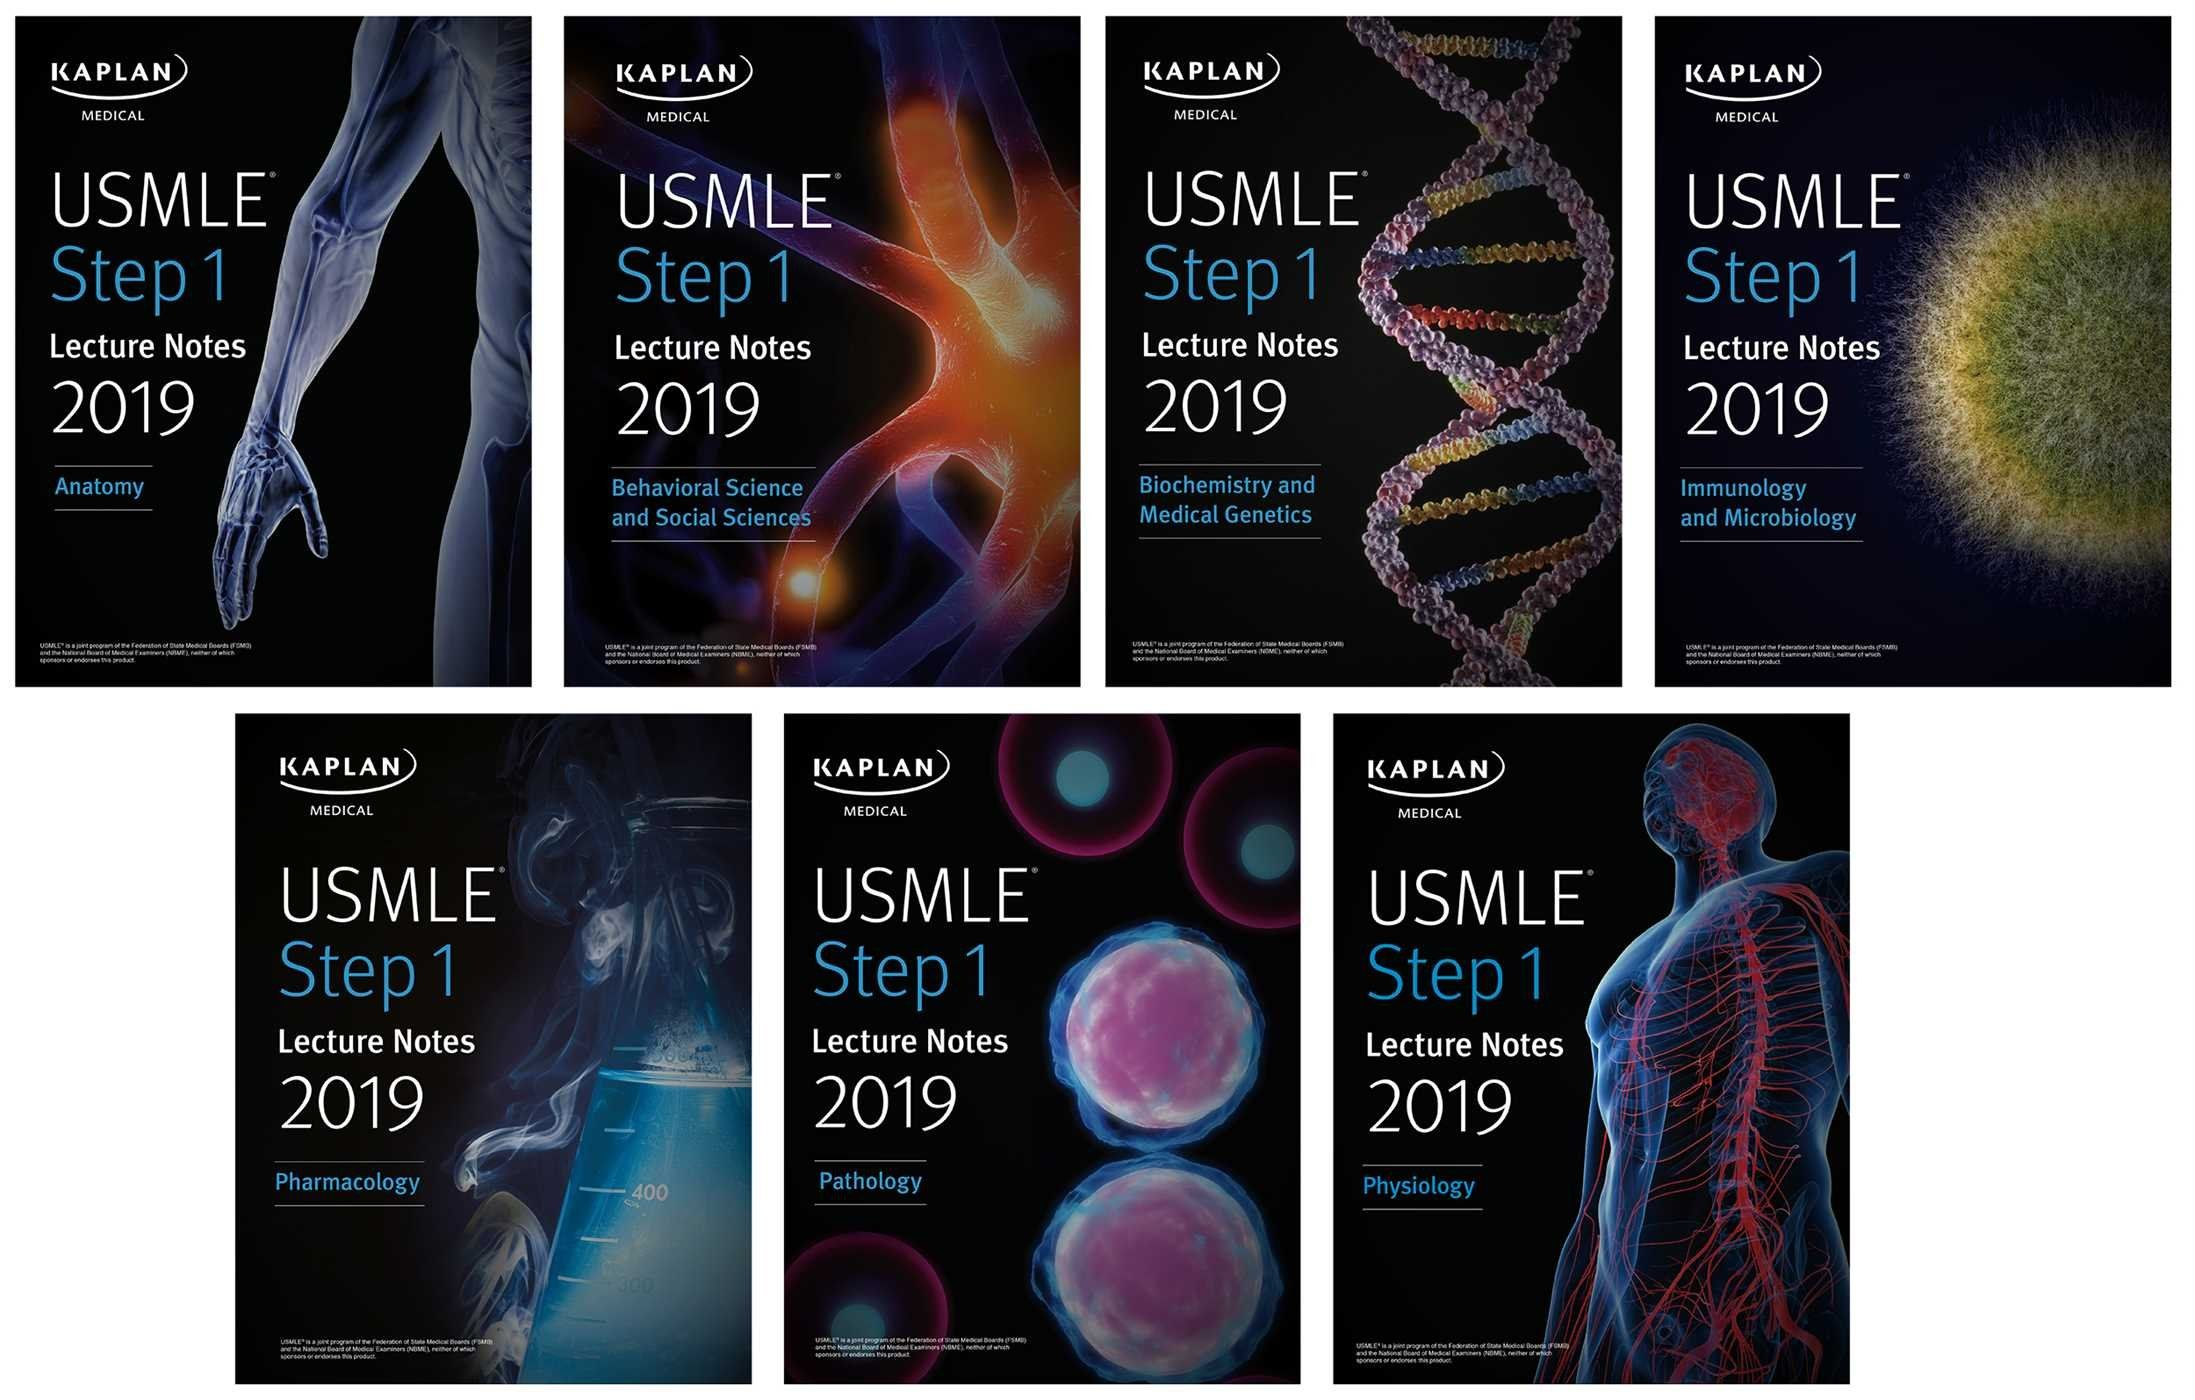 kaplan usmle step 1 lecture notes 2019 pdf free download